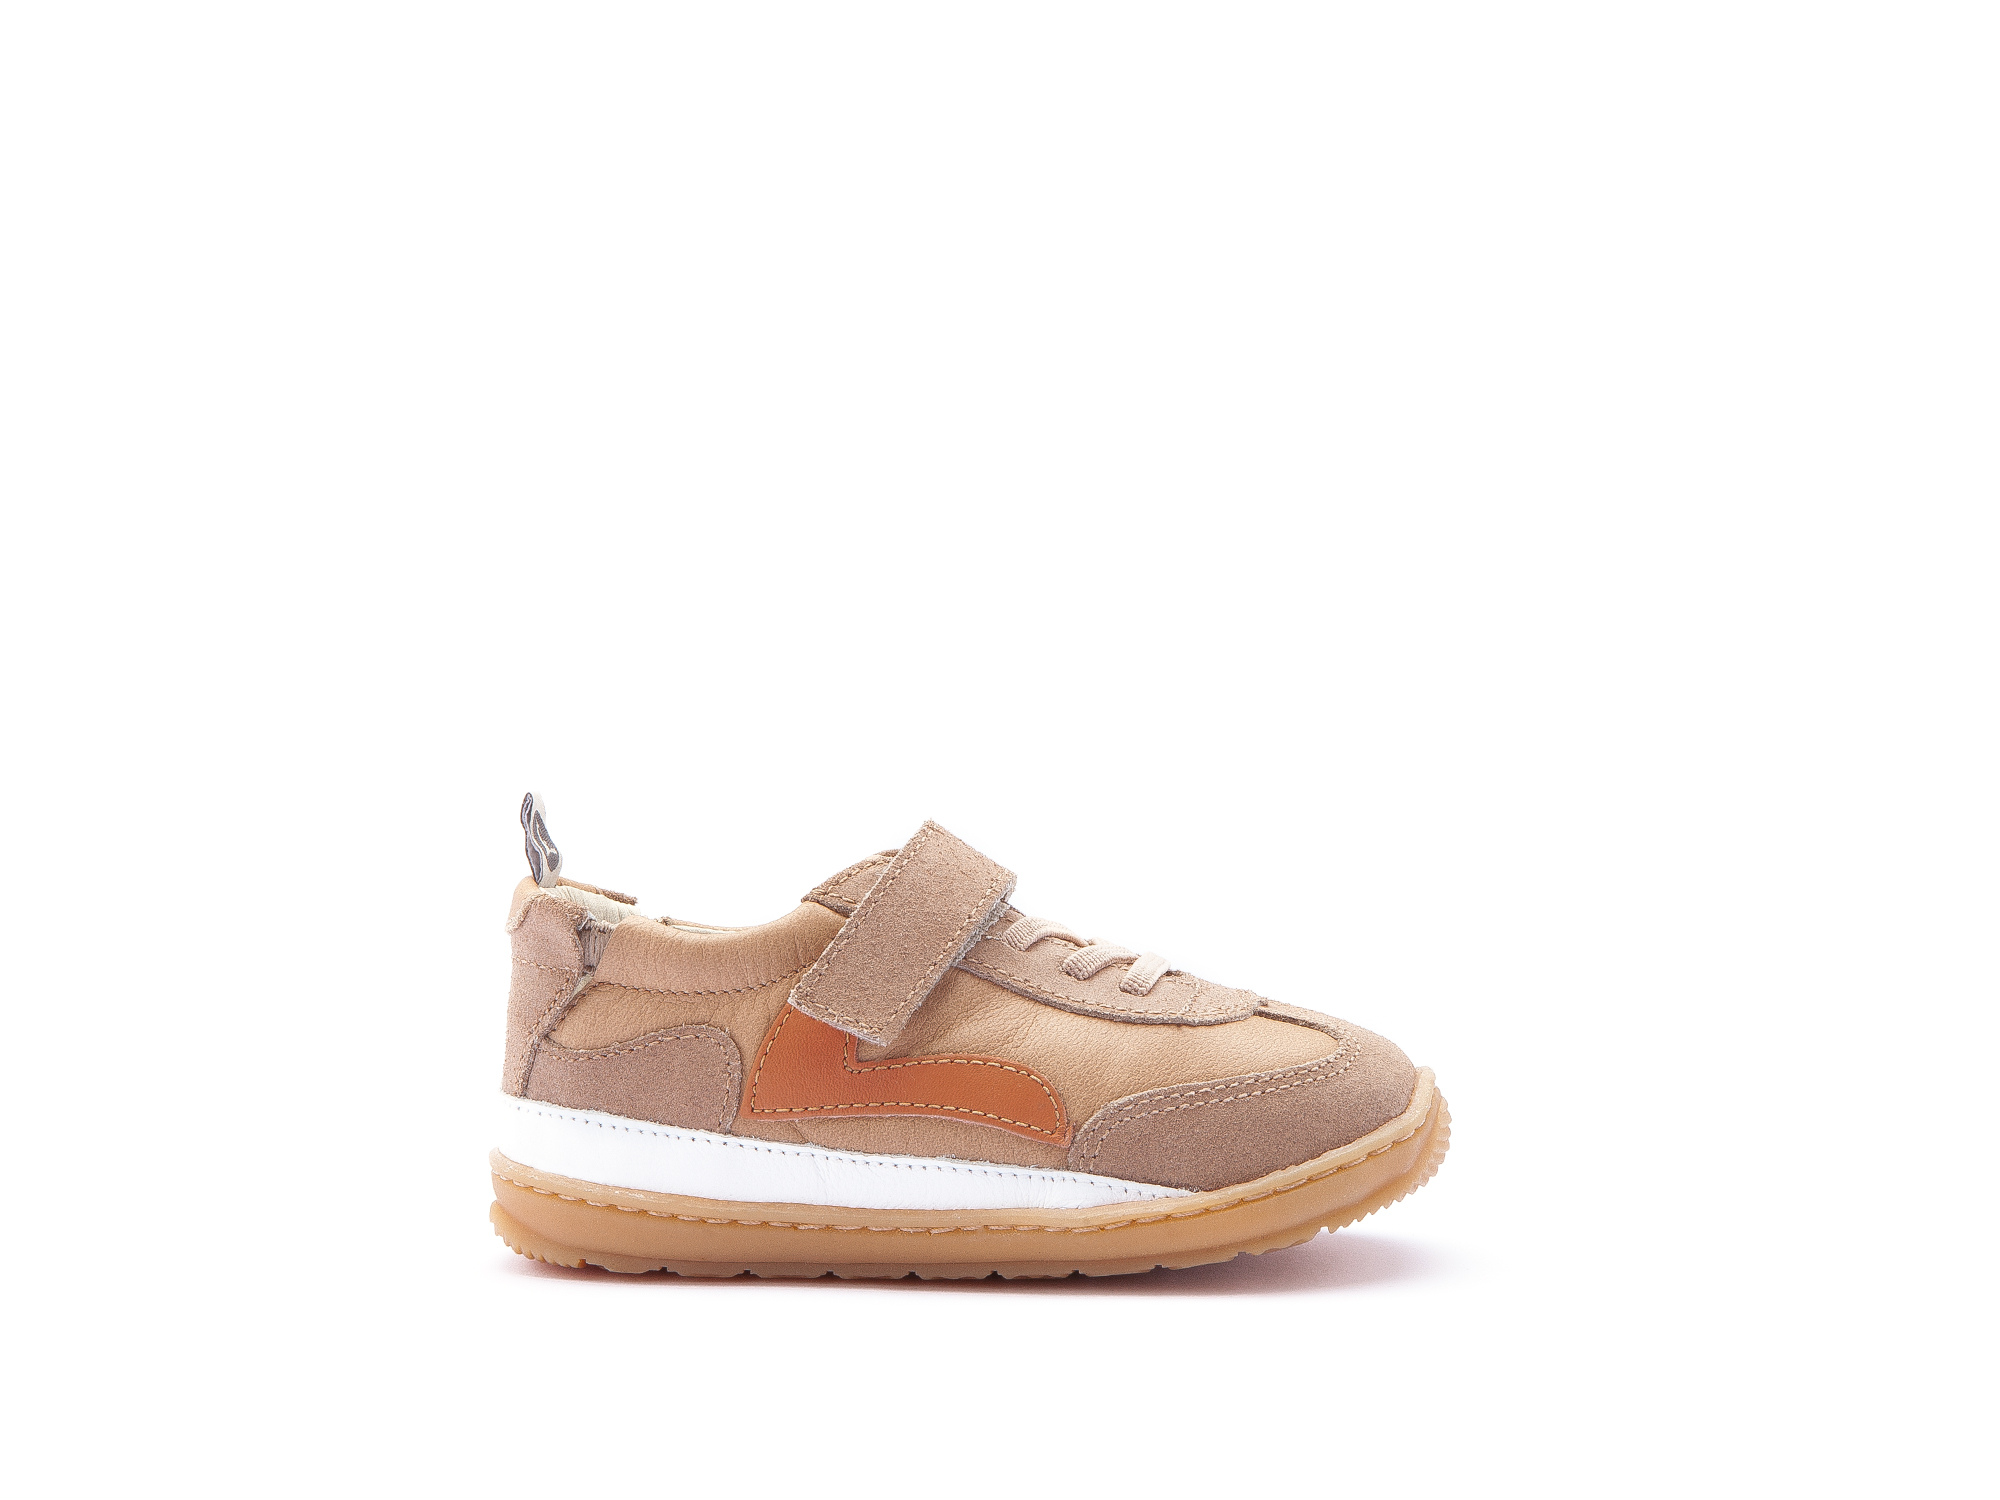 Tênis Starty Sand/ Dry Tan Suede Baby 0 à 2 anos - 1